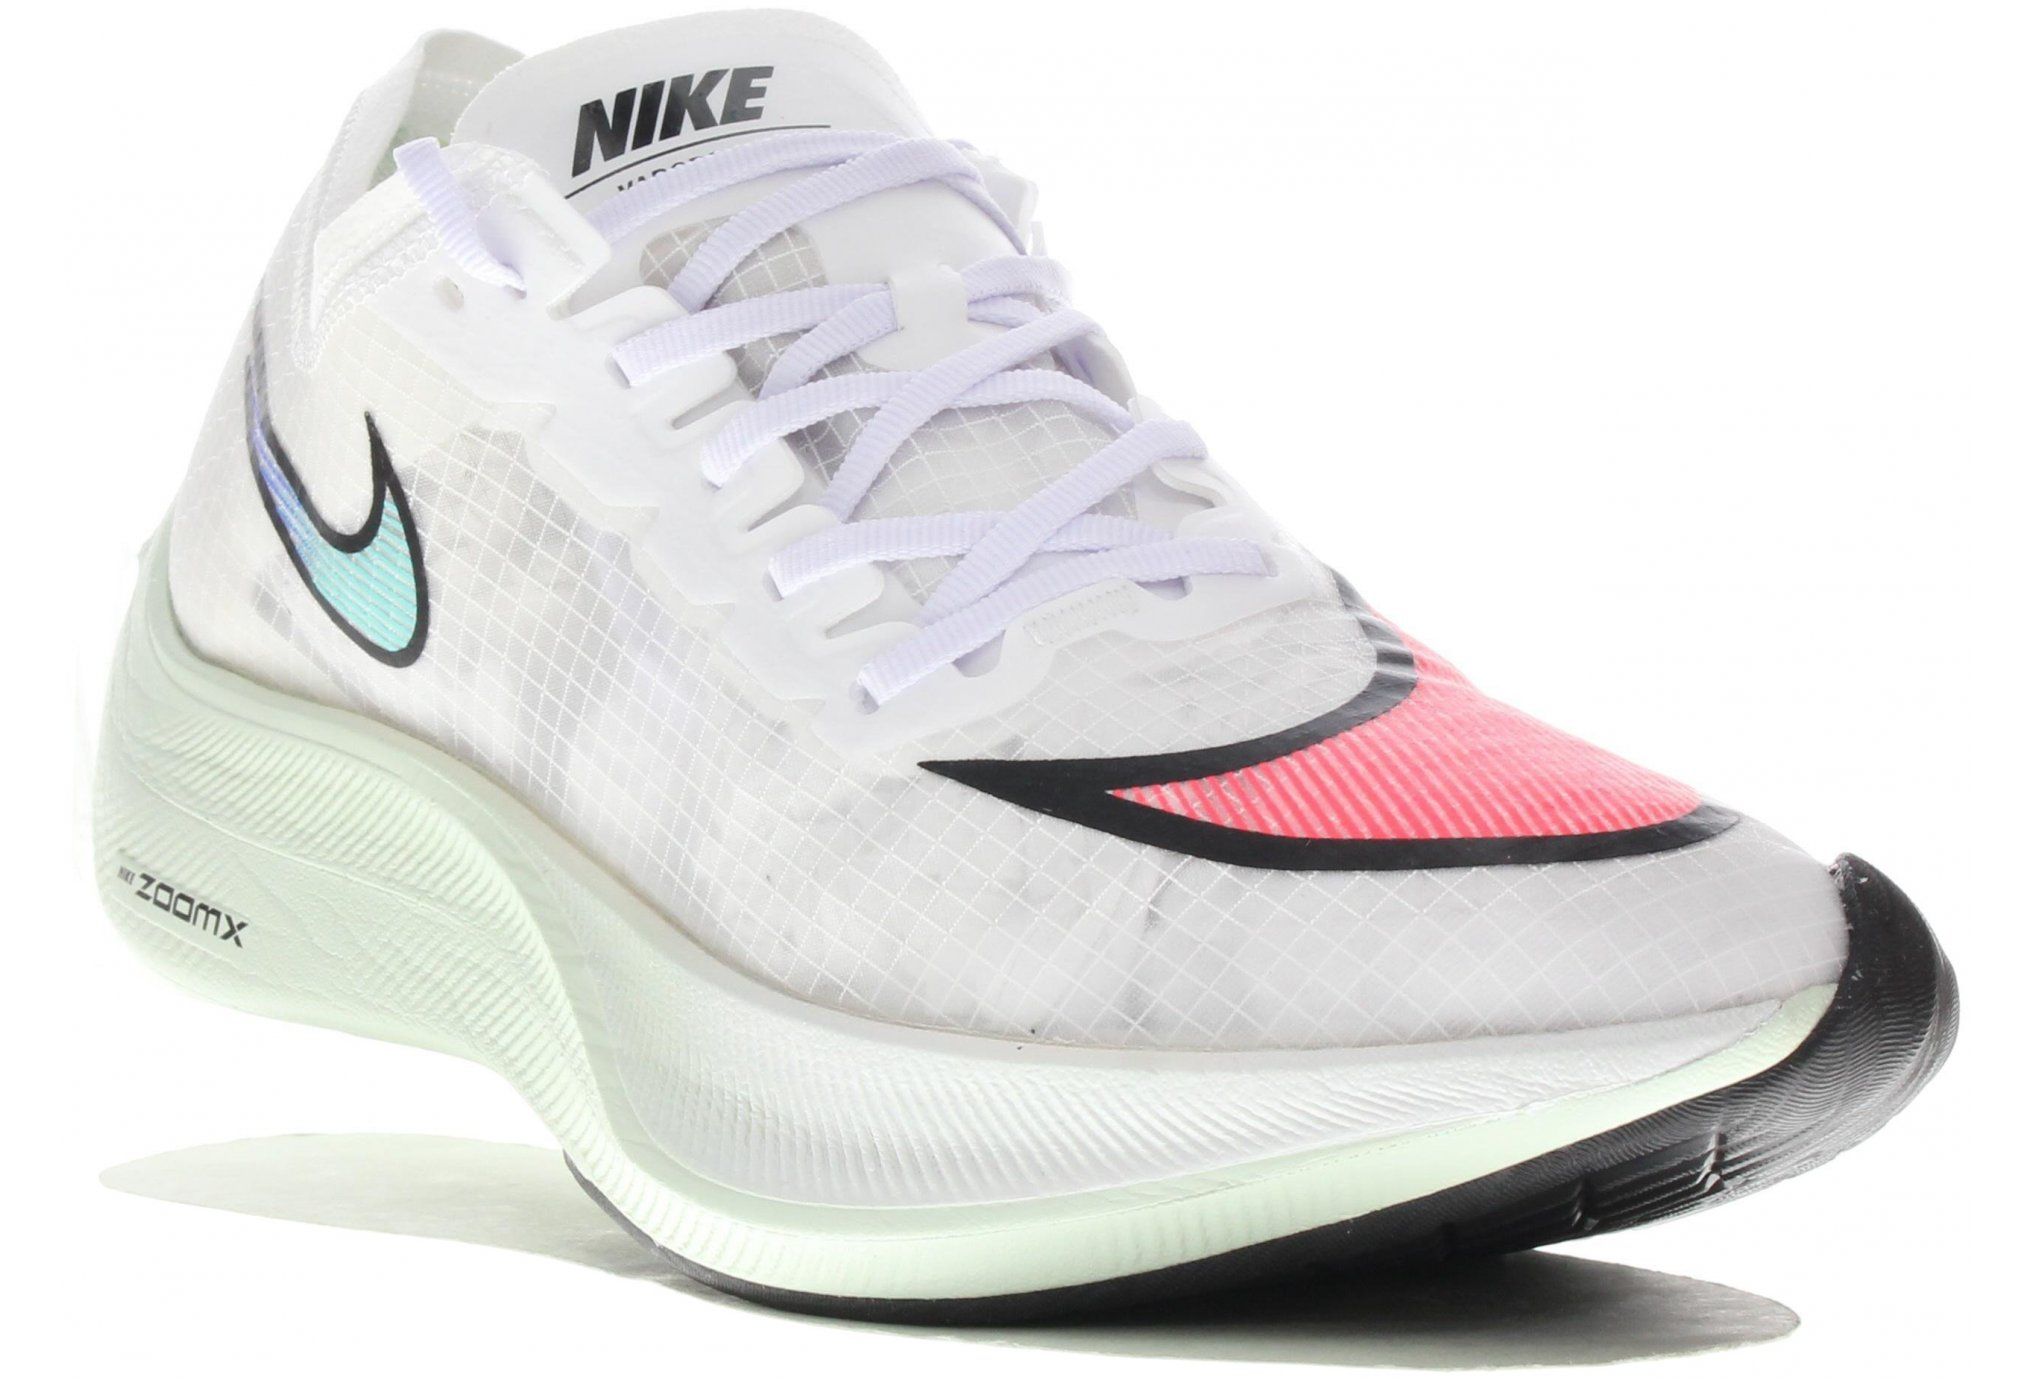 Nike ZoomX Vaporfly Next% Chaussures running femme